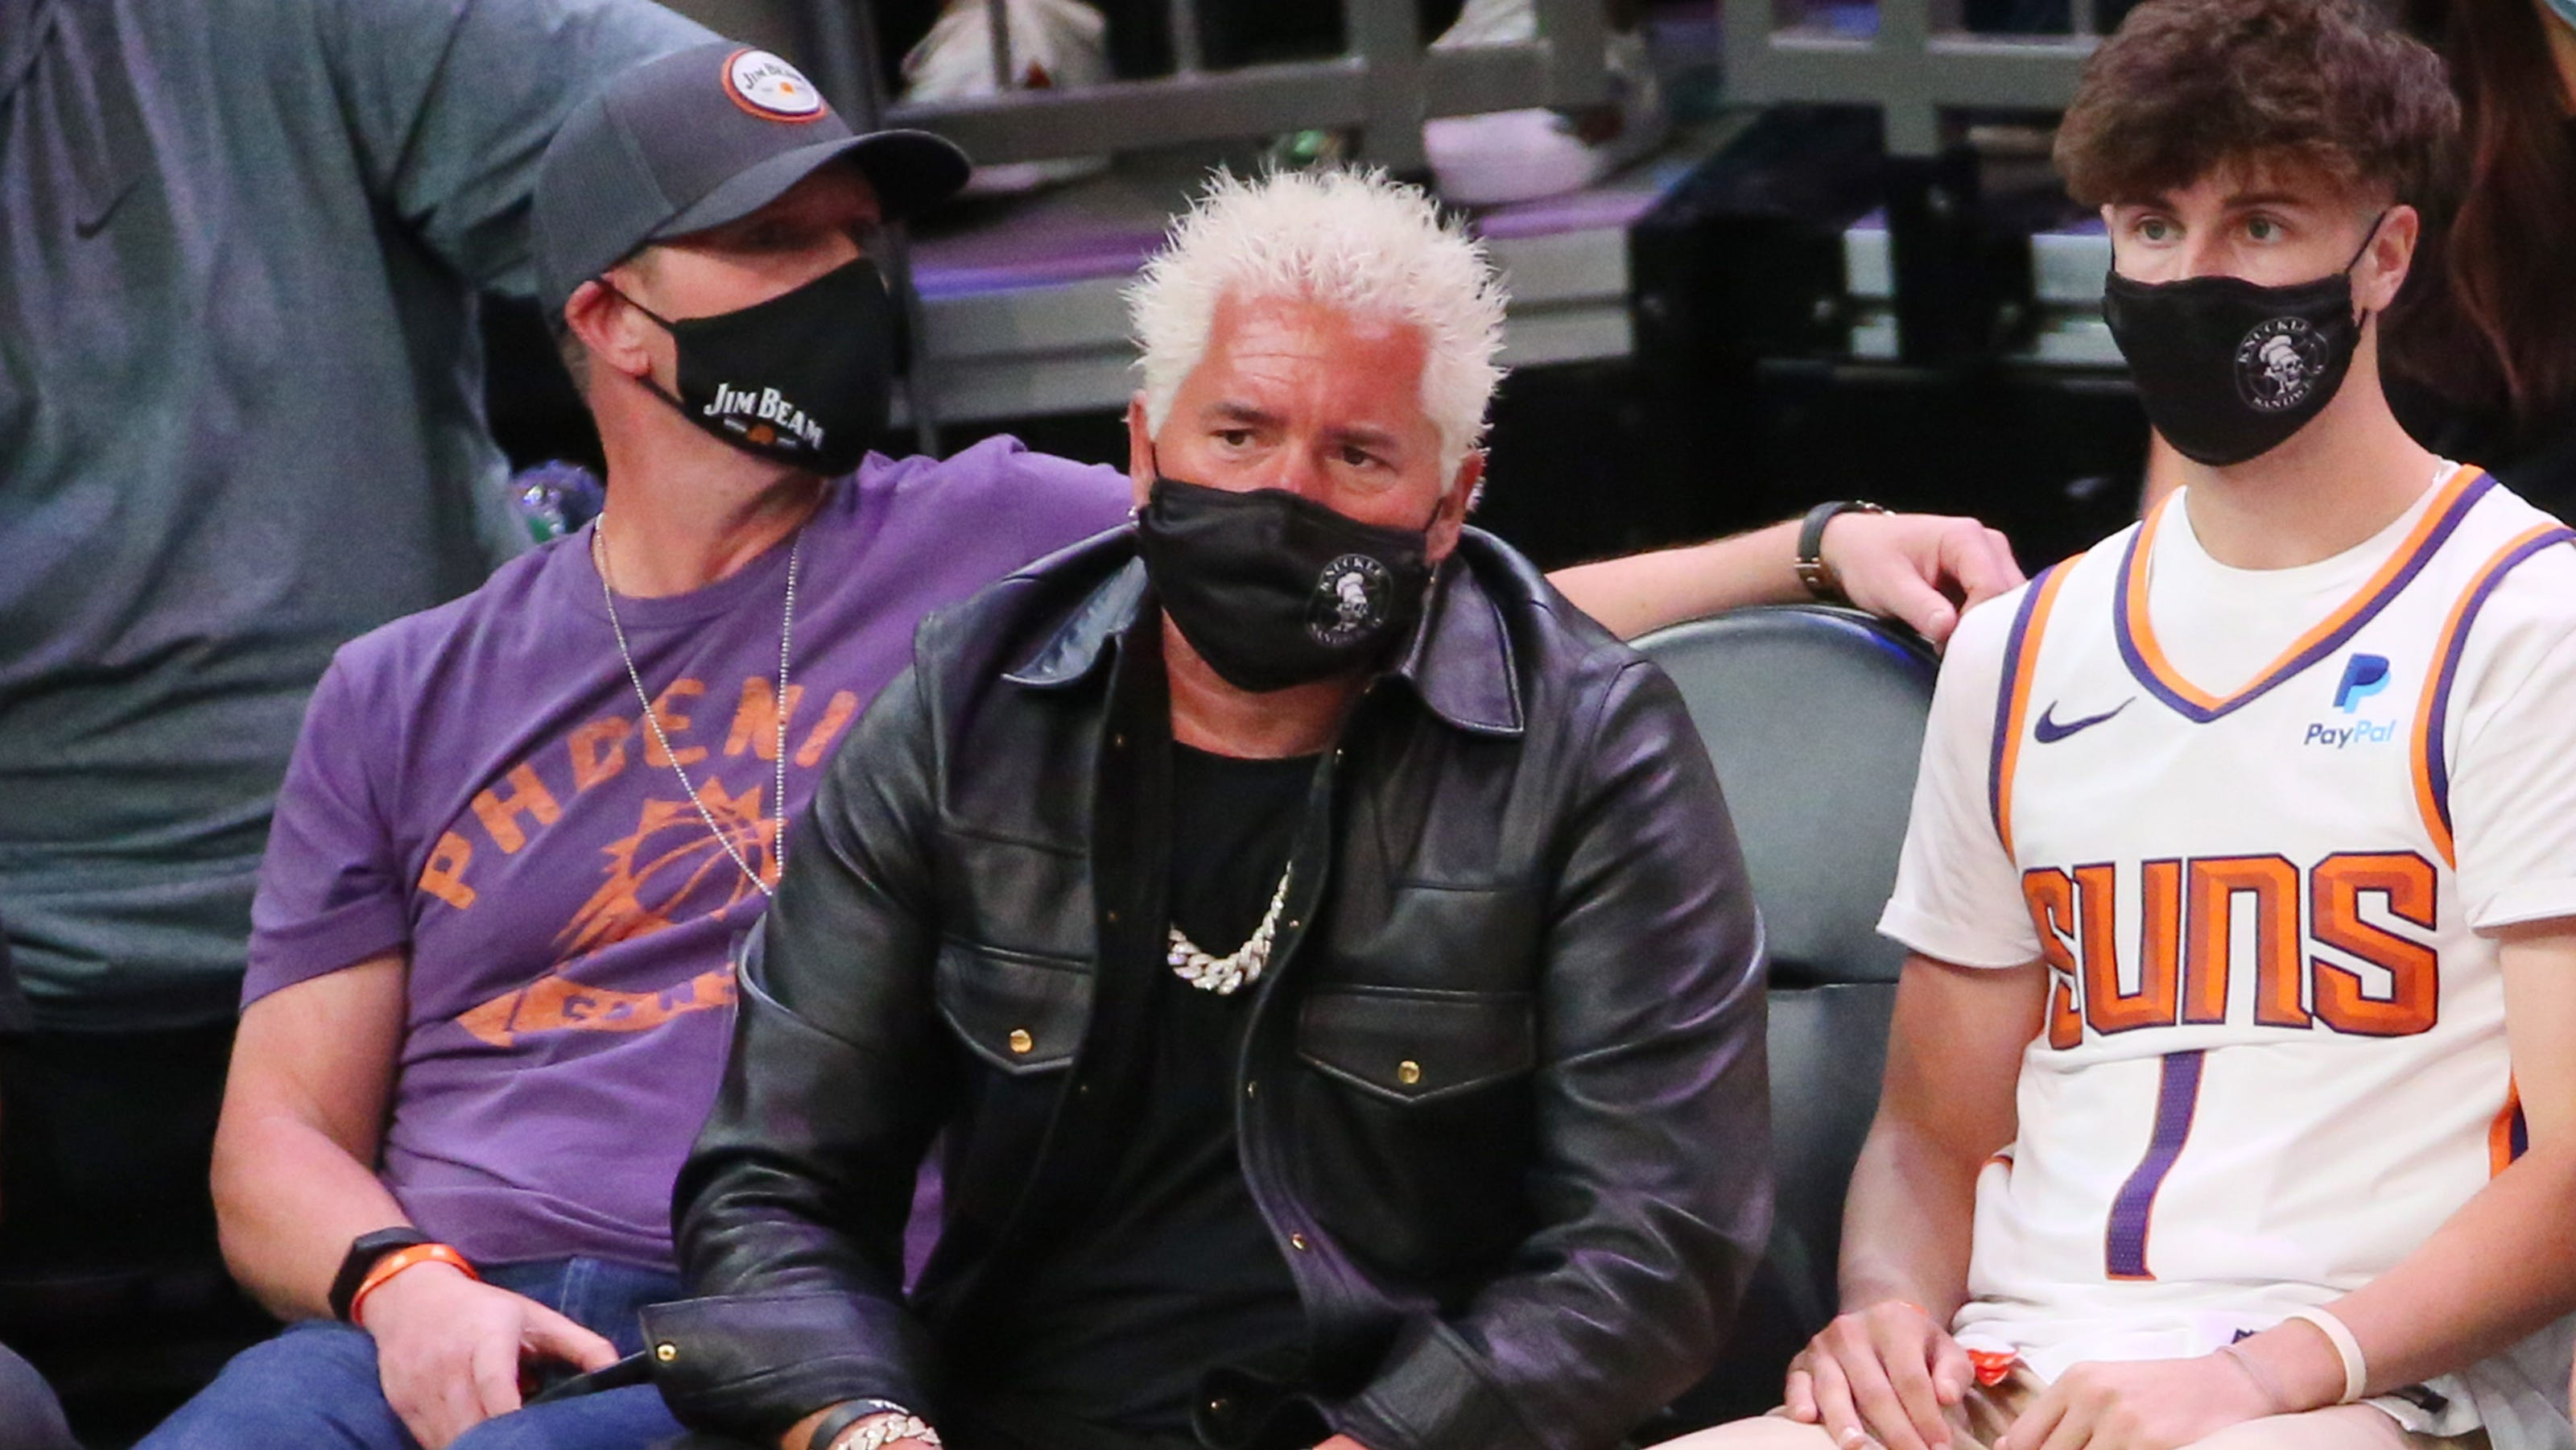 Guy Fieri sits courtside at the Suns-Nuggets game, proving that Phoenix is Flavortown